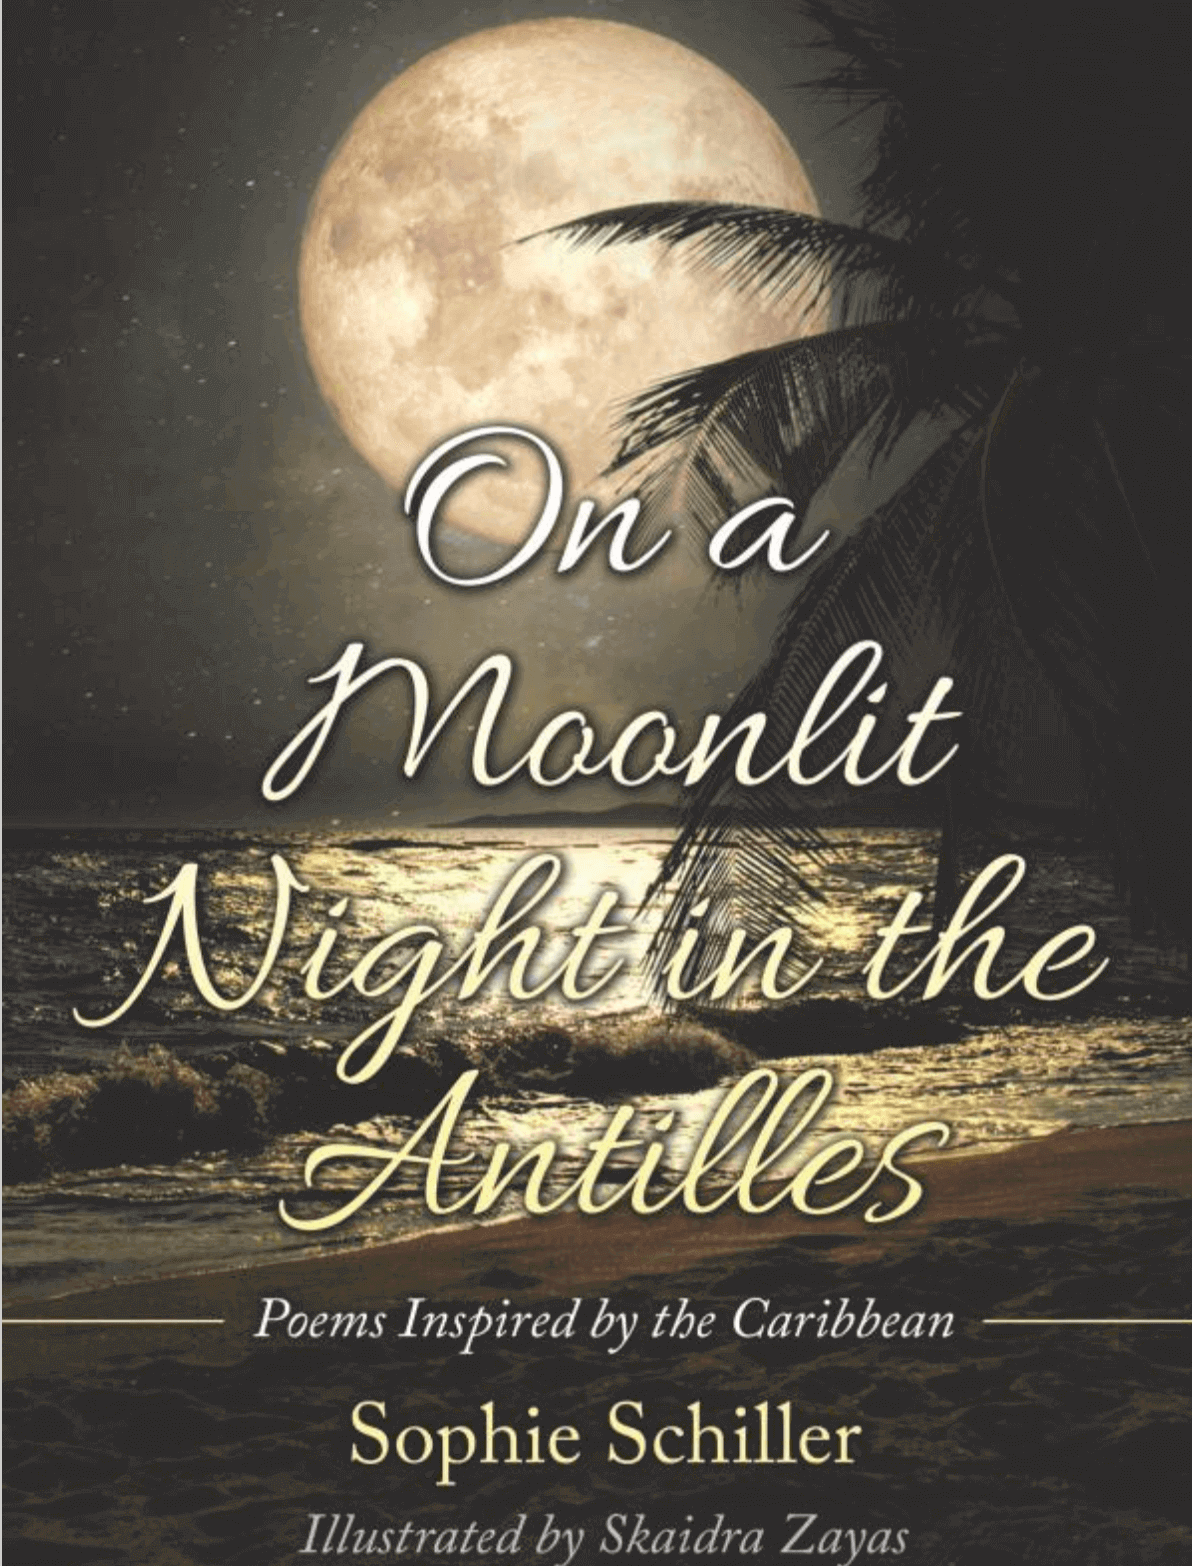 On a moonlit night in the Virgin Islands